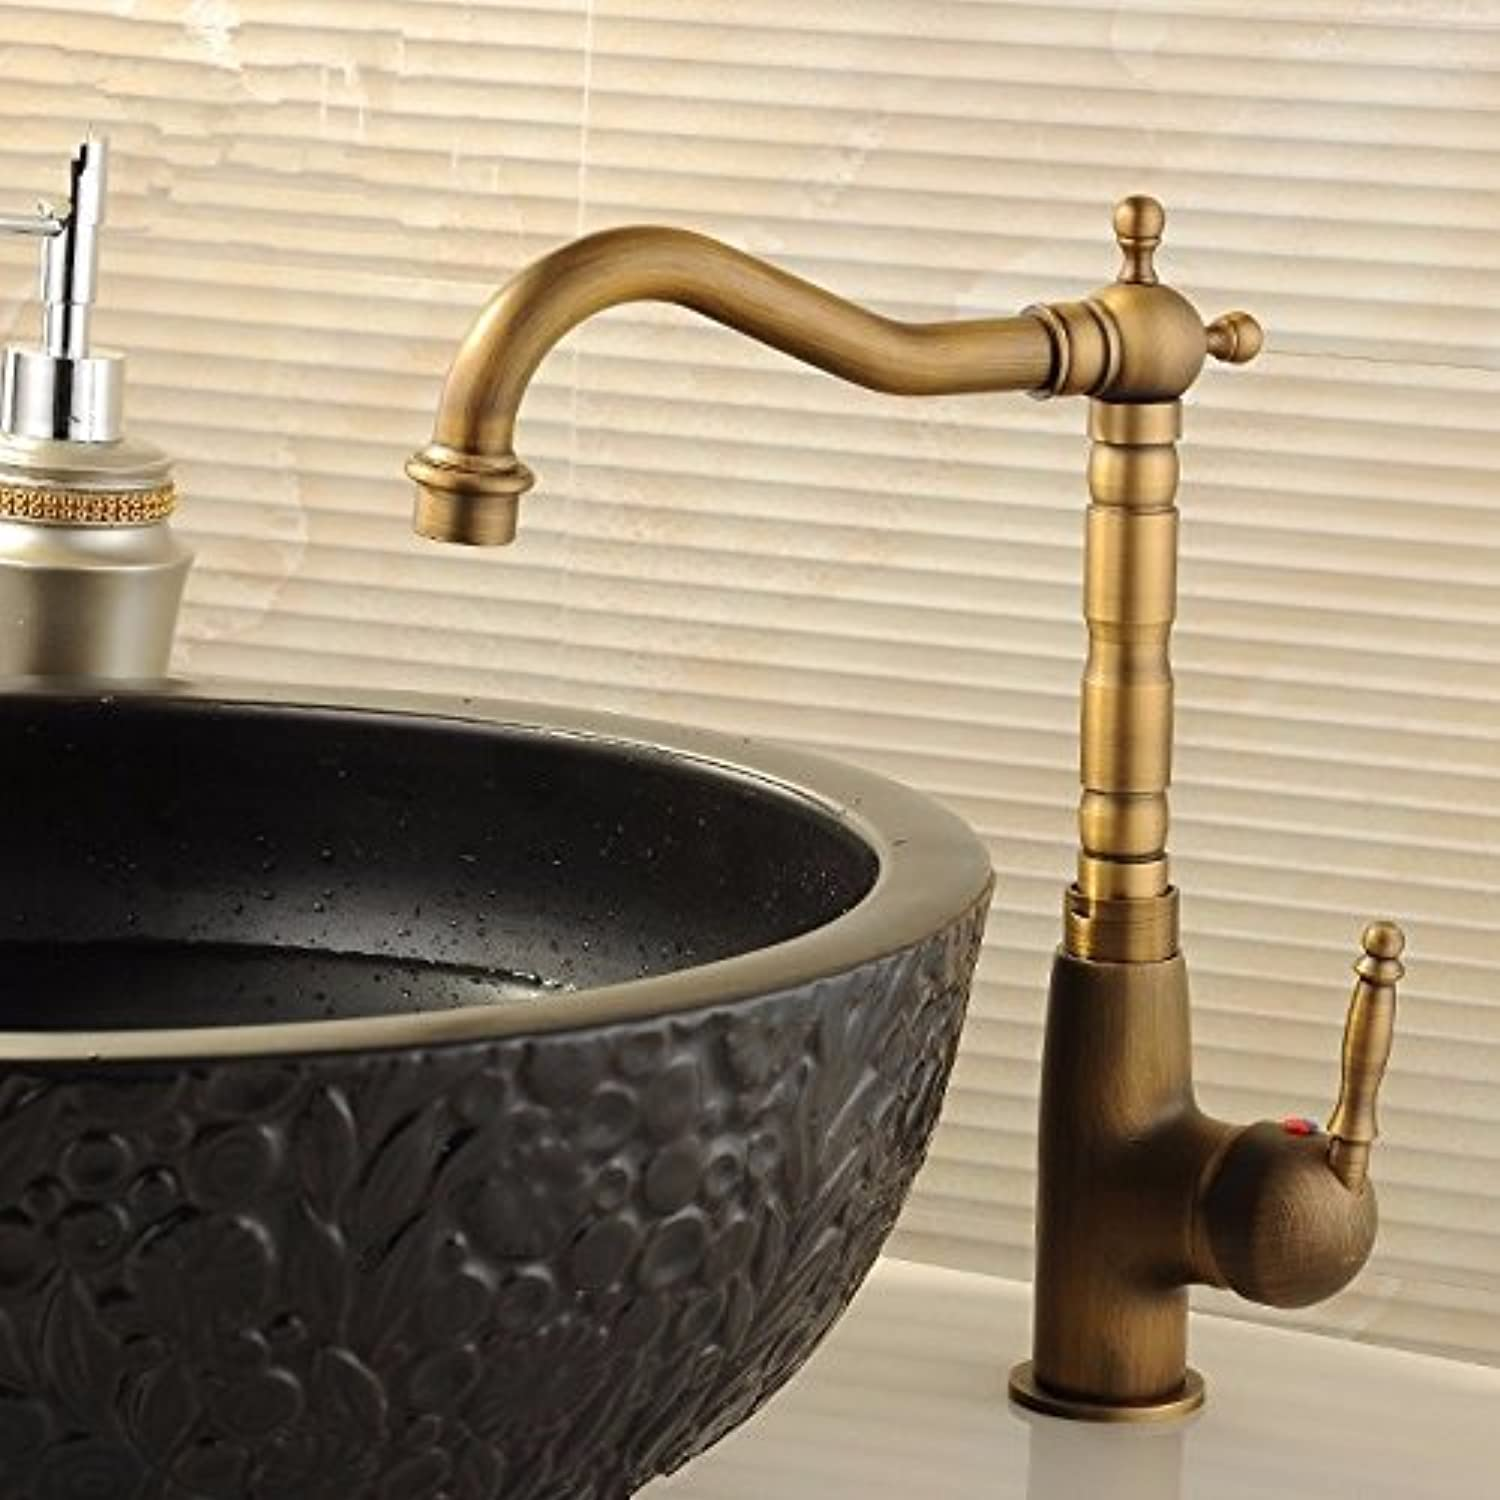 Hlluya Professional Sink Mixer Tap Kitchen Faucet Antique faucet surface basin mixer basin and cold water